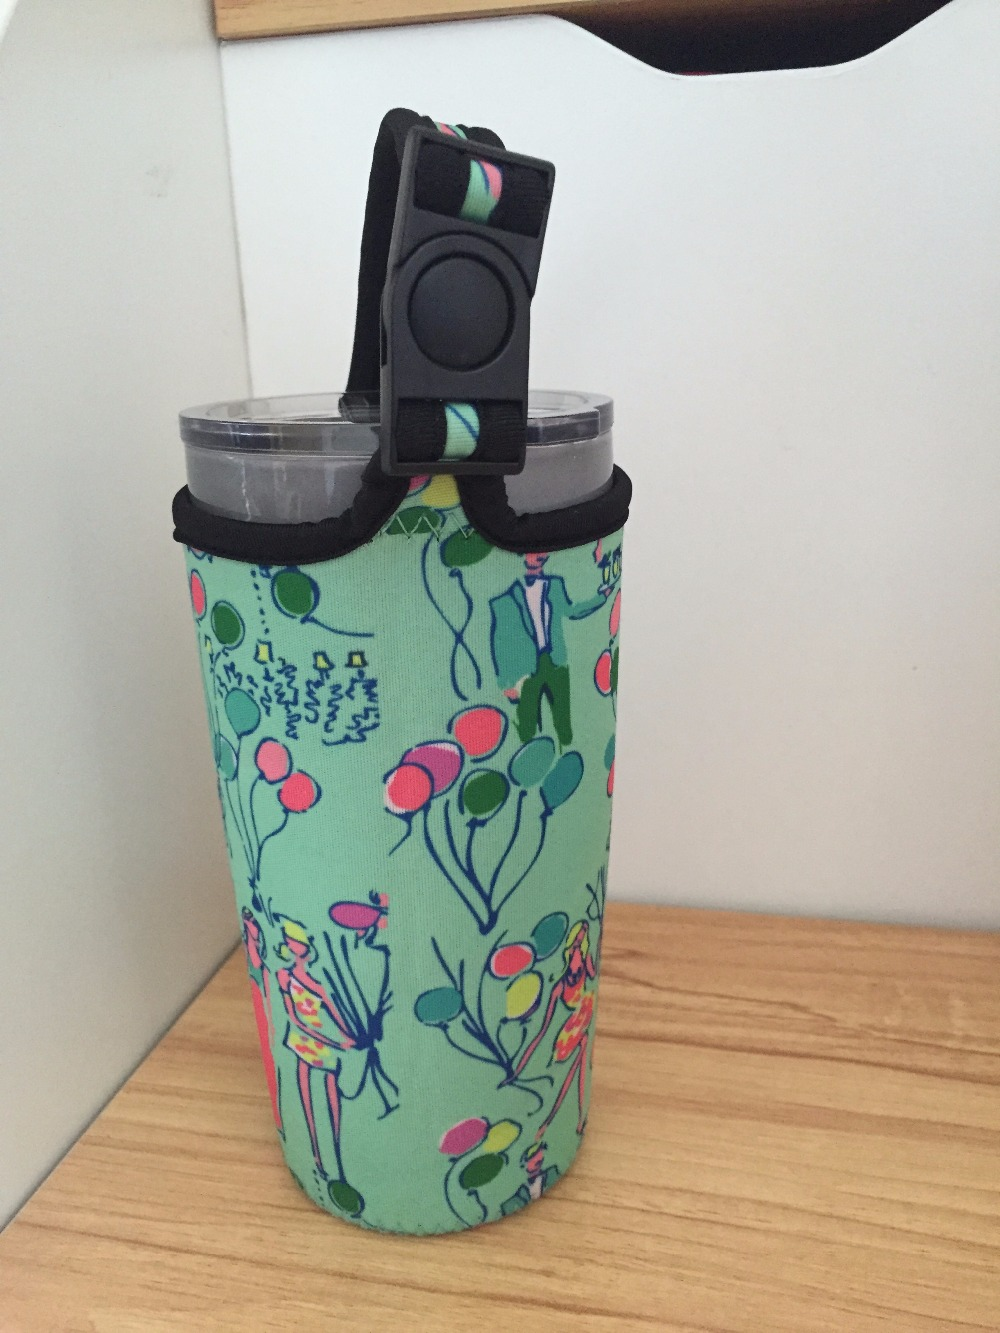 49dfe5e3285123 For Rtic 20oz Tumbler Travel Mug 20oz New Lilly Pulitzer Hard Transparent  Pop Neoprene Sport Bottle Carry Bag-in Water Bottle & Cup Accessories from  Home ...